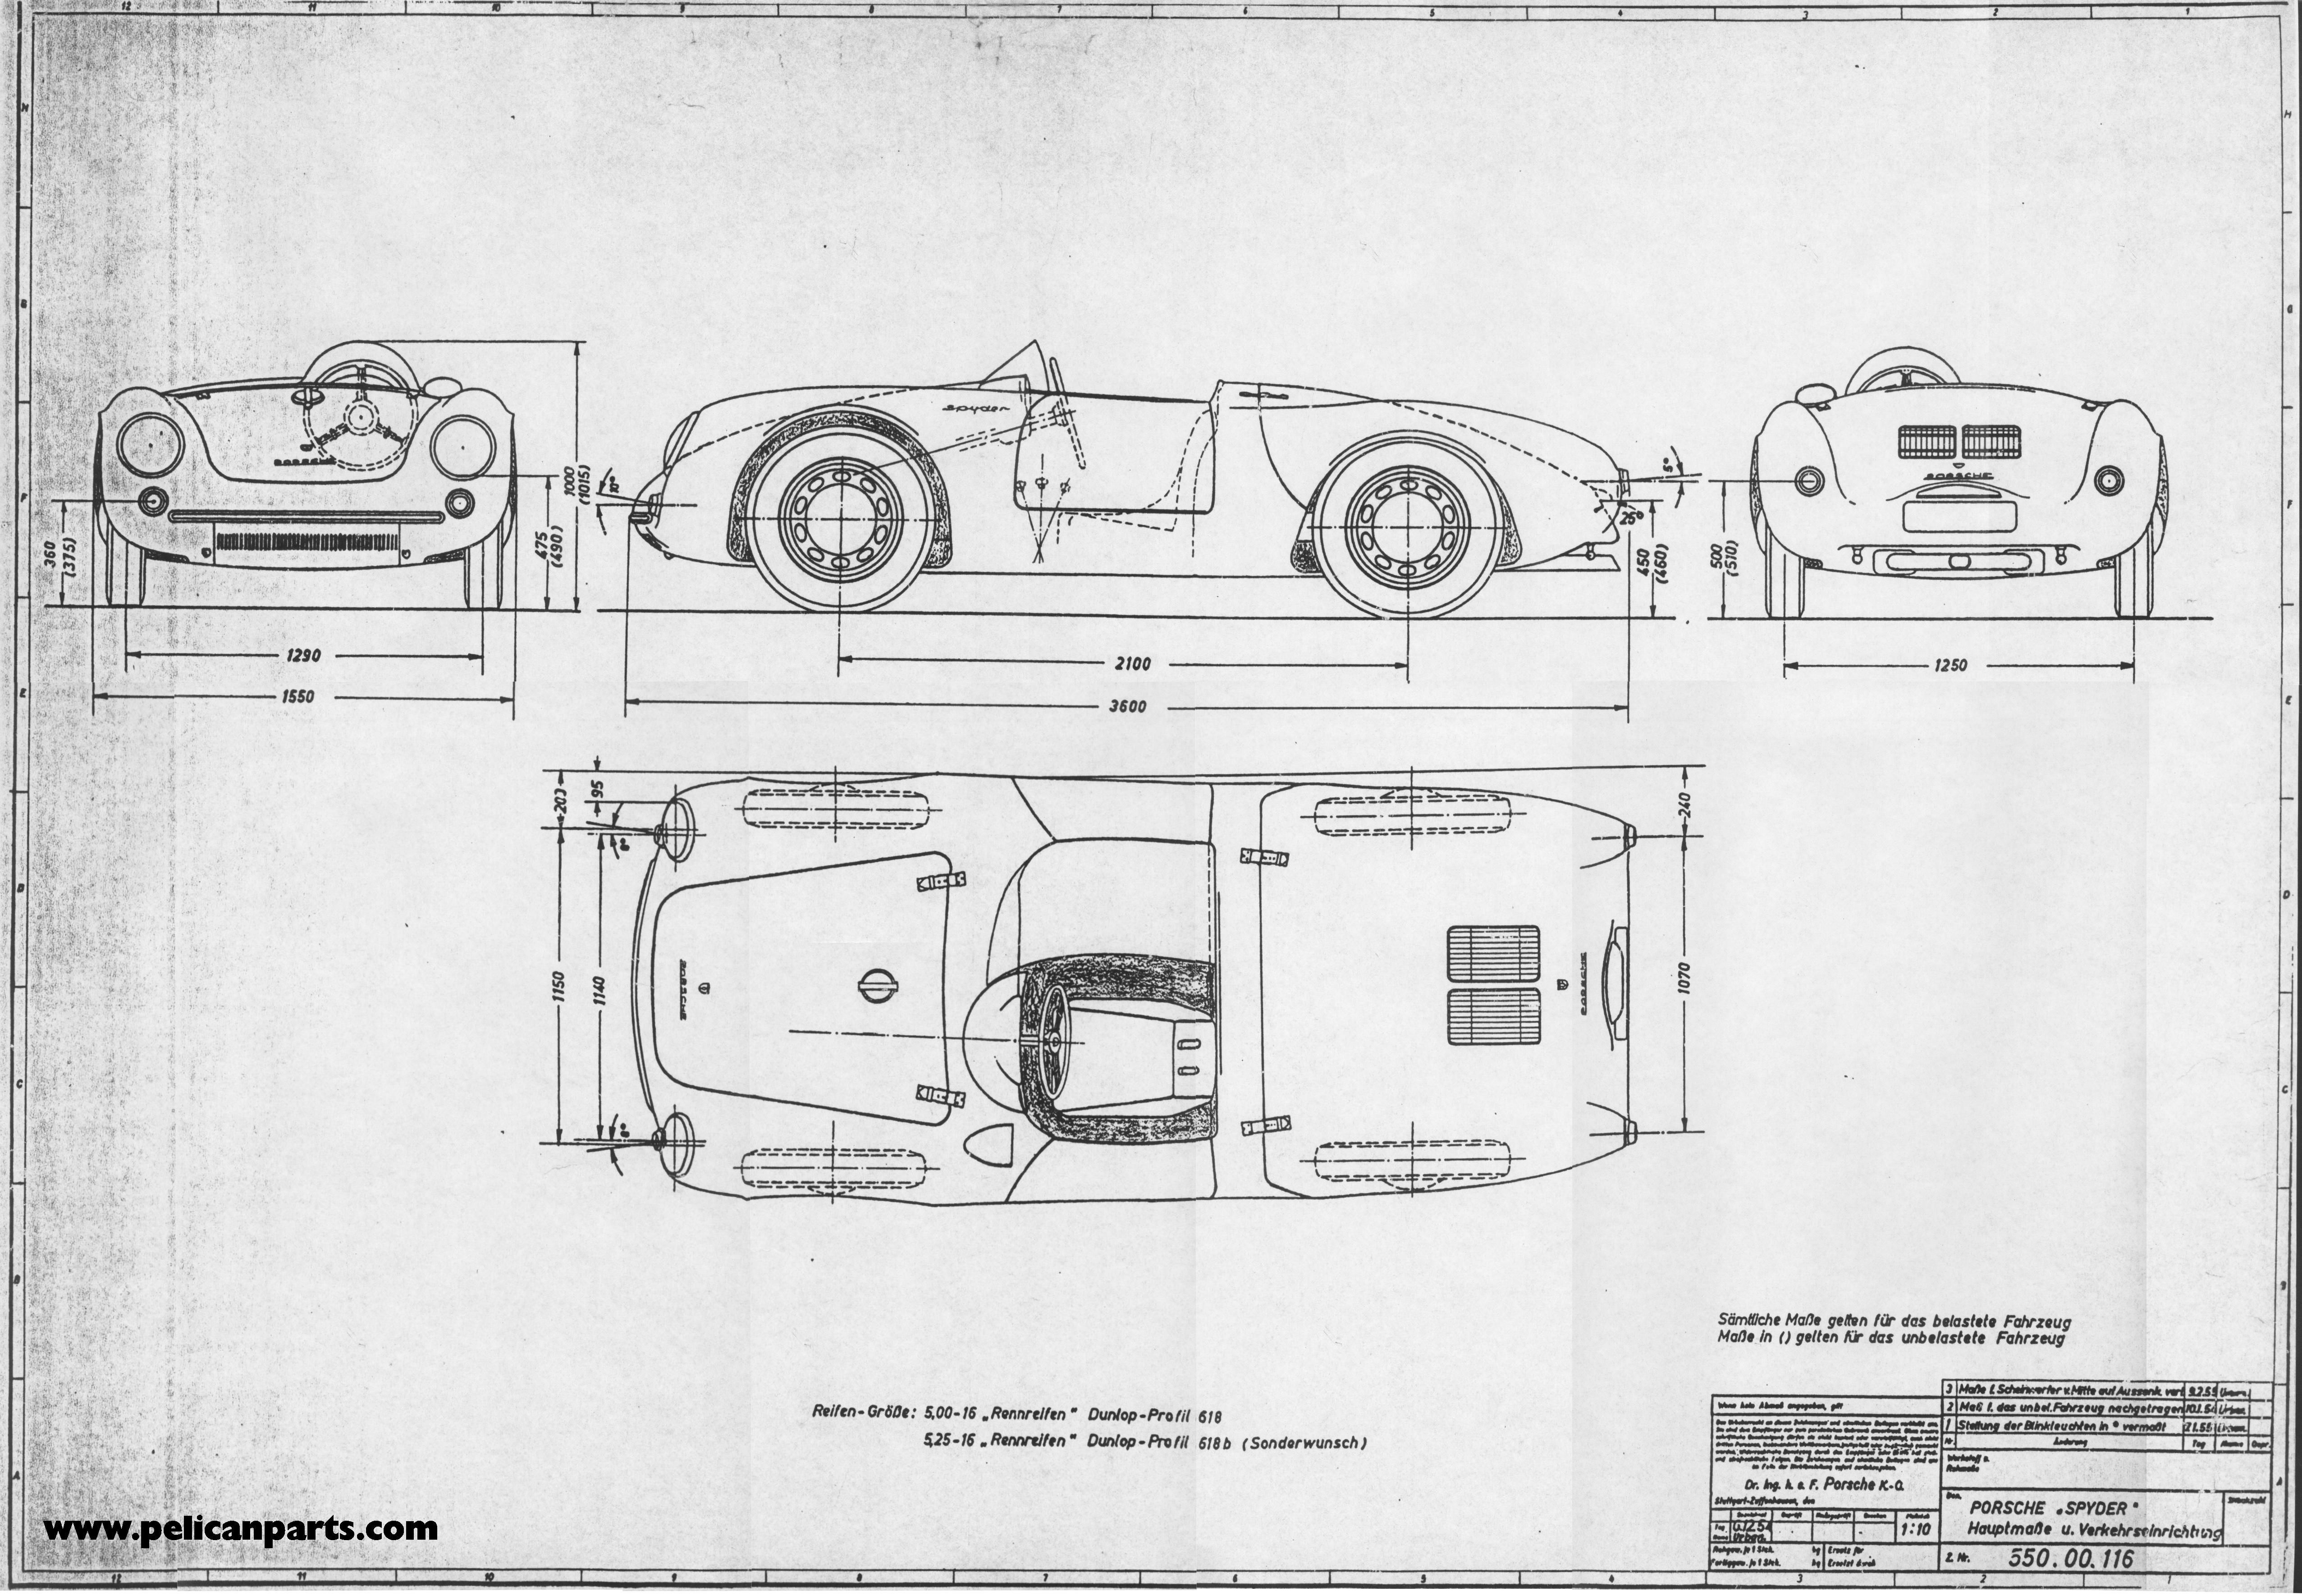 550largeg 51073541 g r a p h i c s pinterest early set of blueprints for the porsche 550 spyder malvernweather Image collections